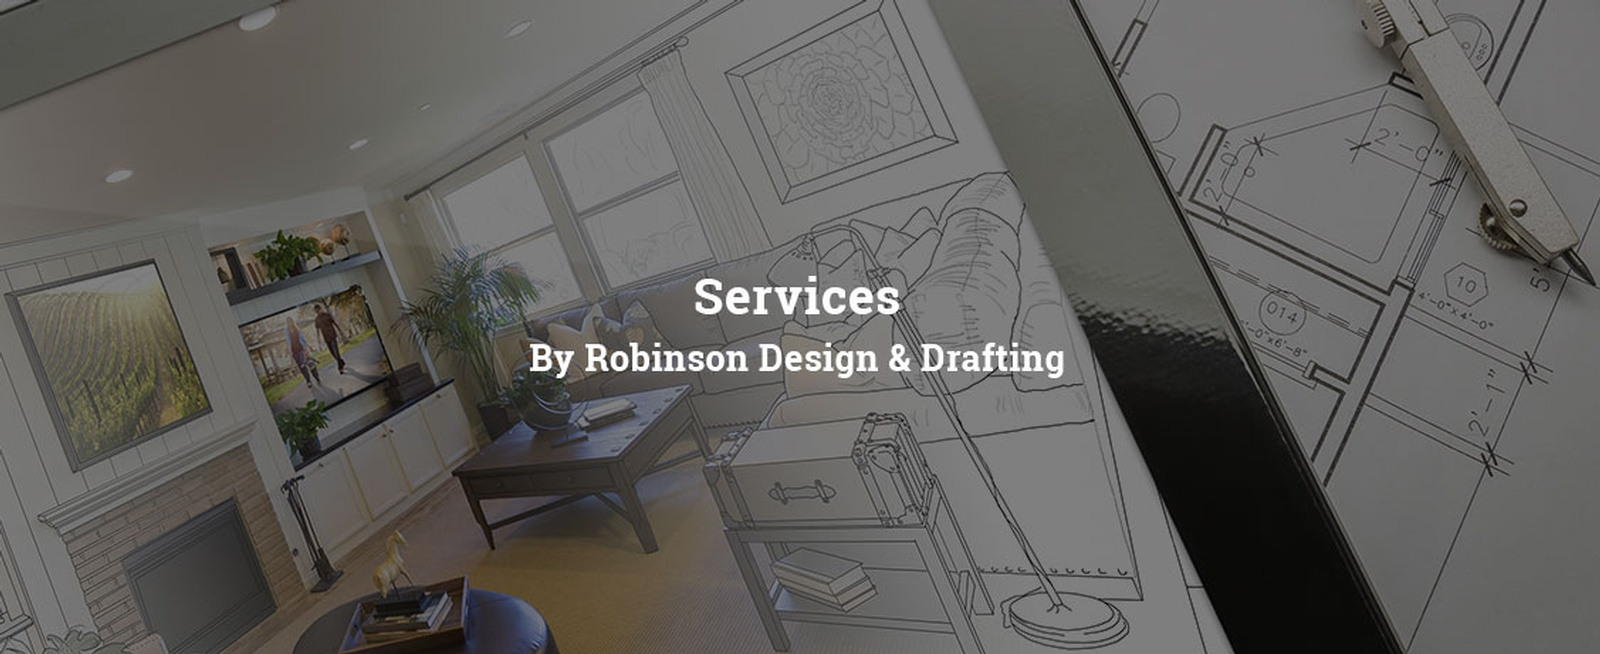 Services by Robinson Design & Drafting